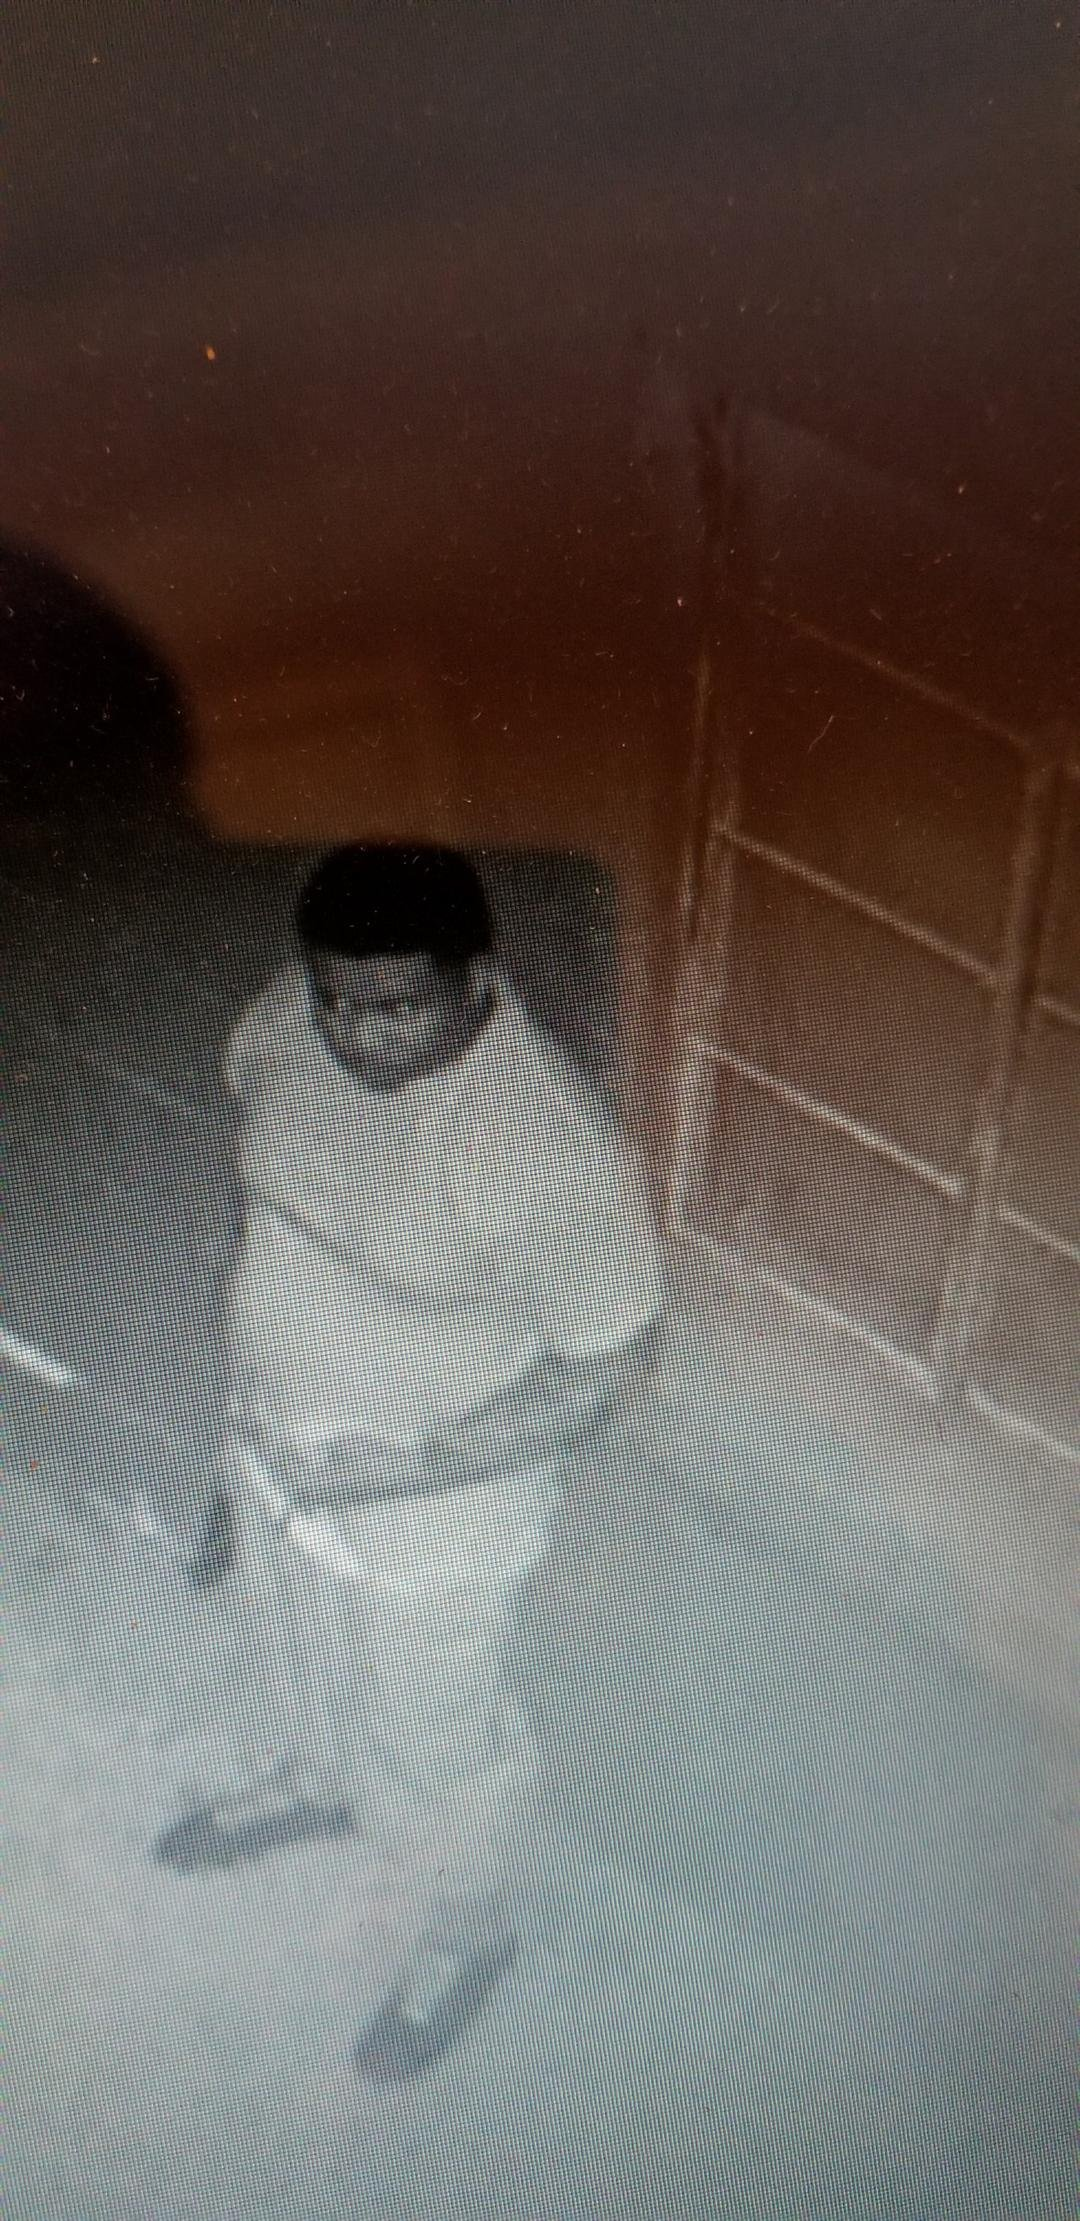 This is the crook, caught on surveillance camera, who tried to steal from New Community Church of God in Christ on Sunday night. (Credit: Charles Archie)